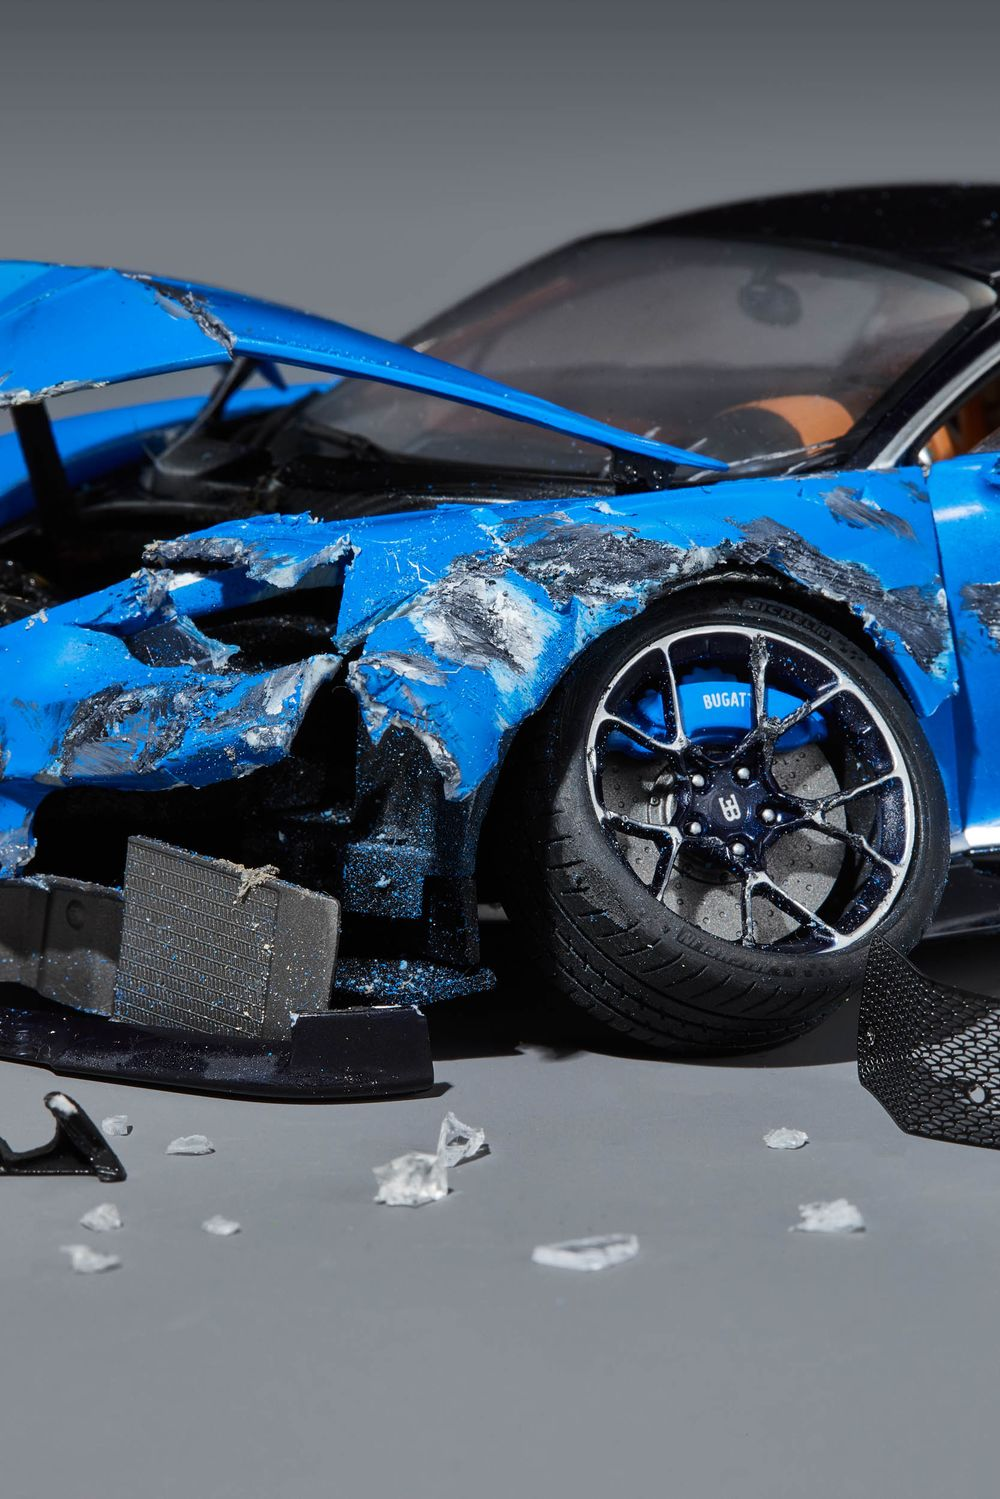 Wrecked Exotic Cars : wrecked, exotic, Crashed, Million, Supercar., What?, Bloomberg